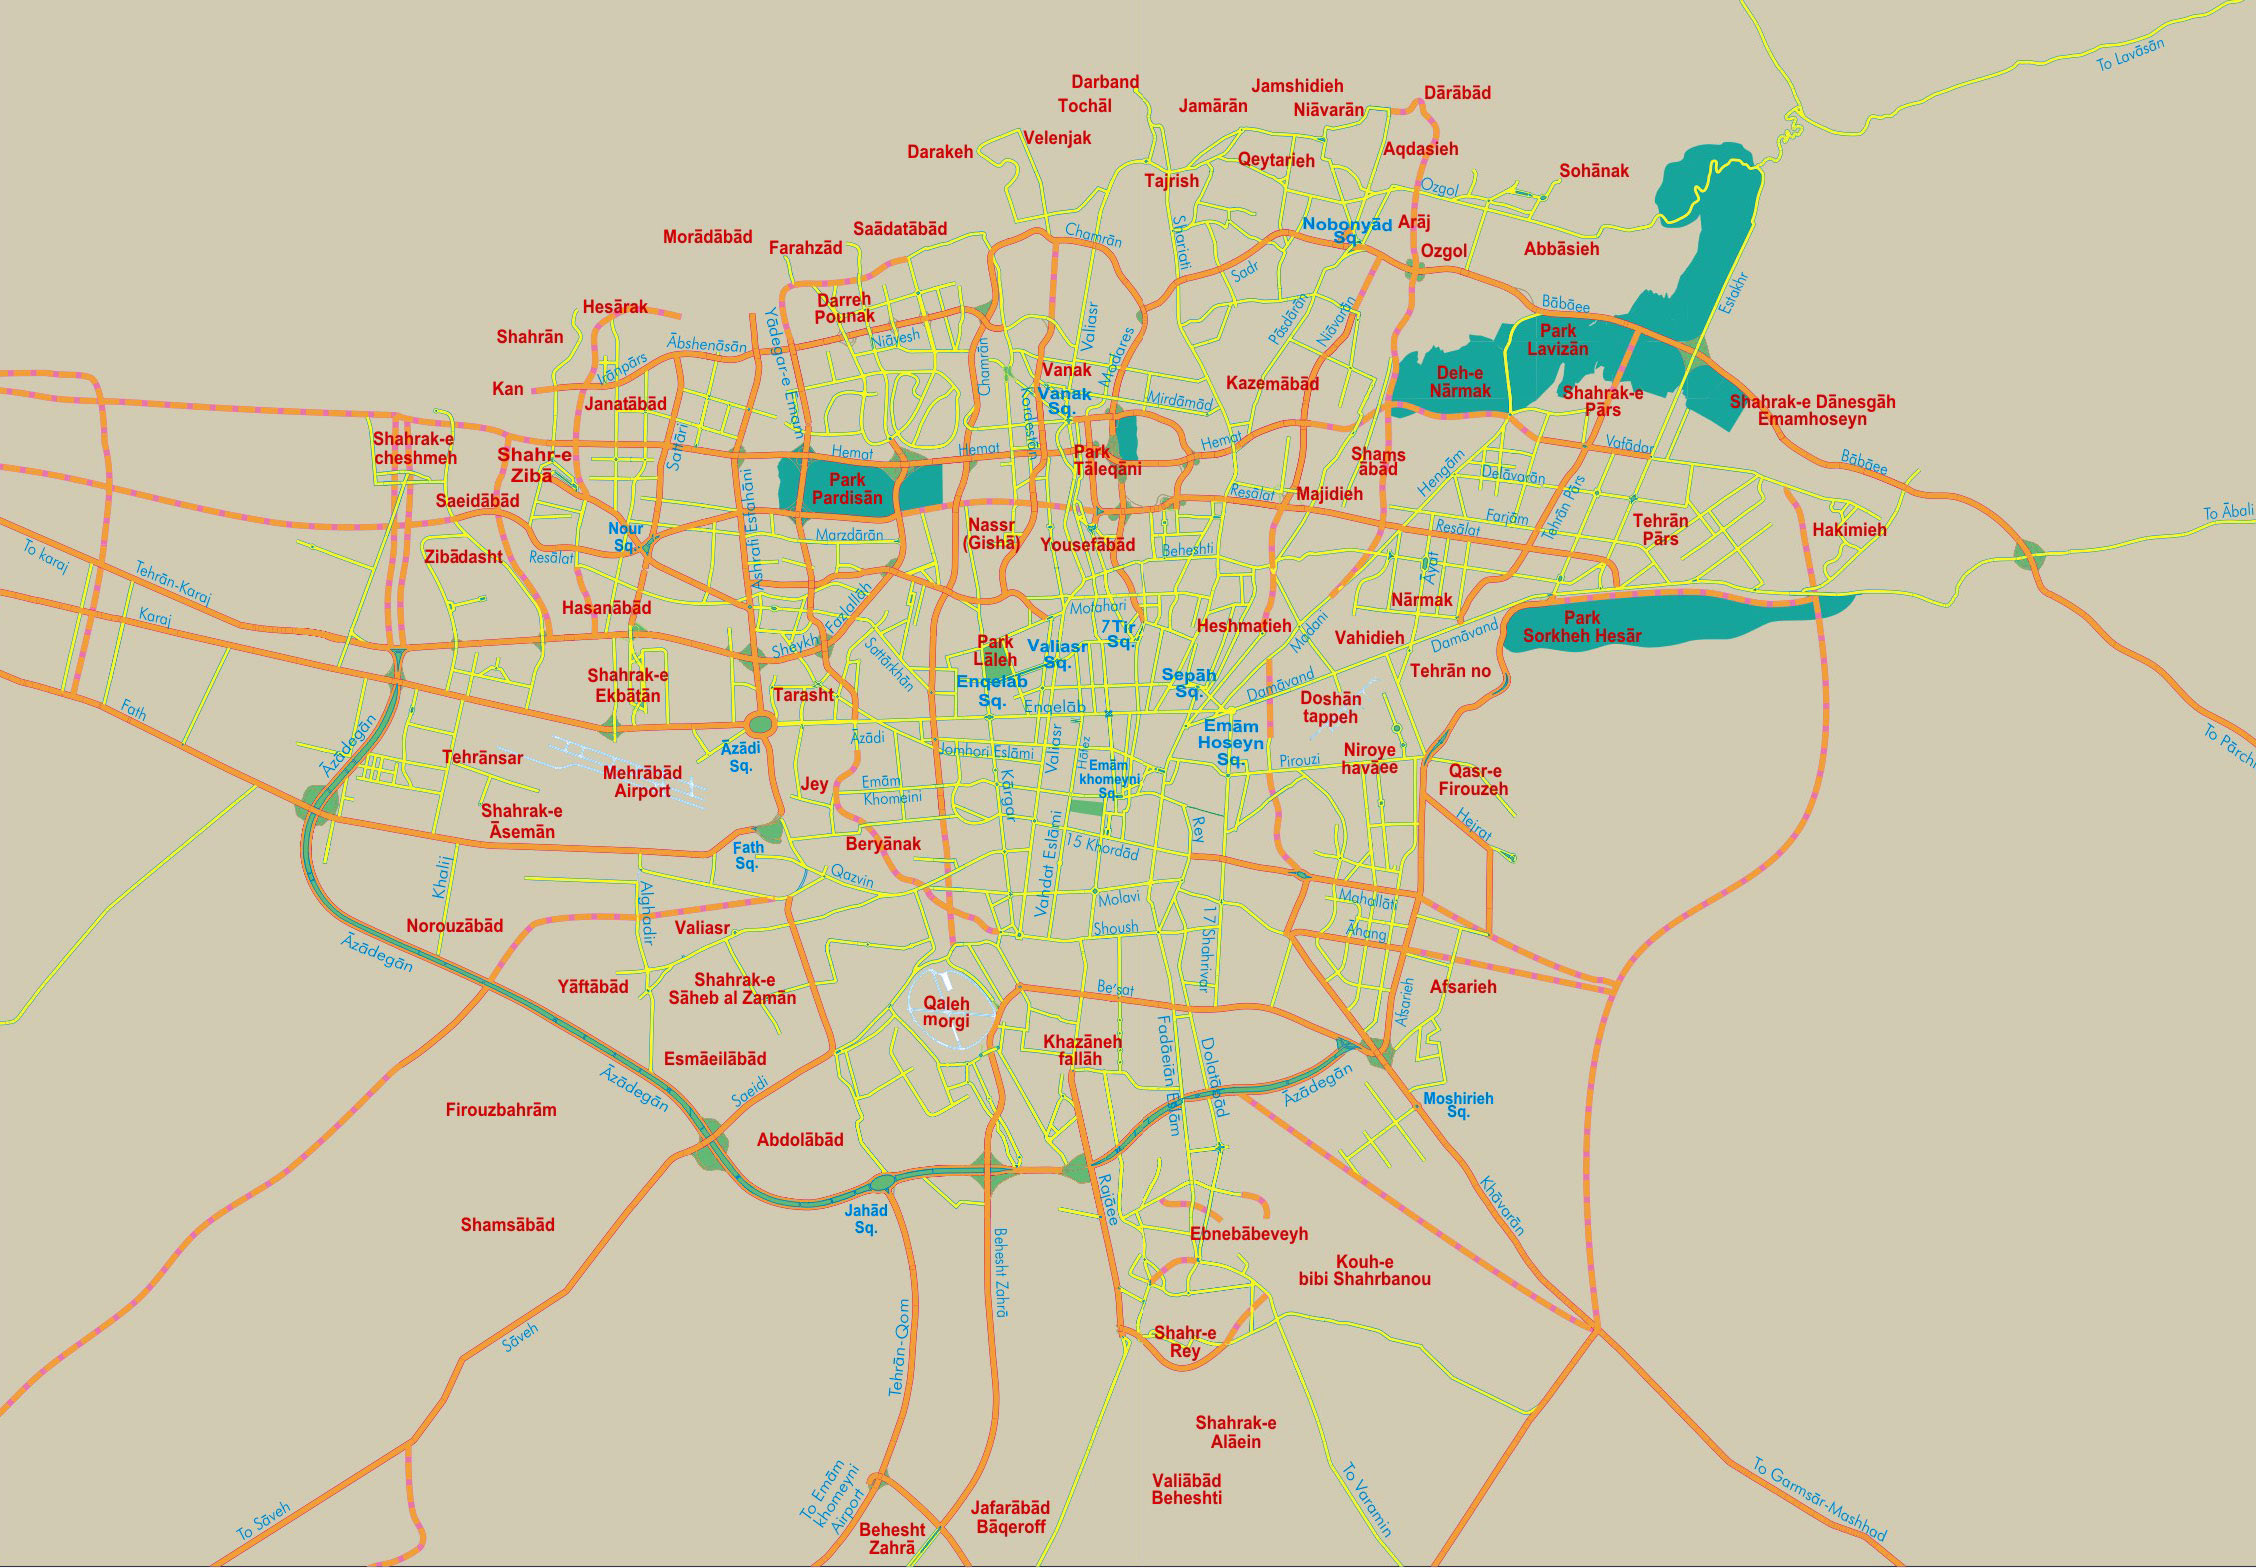 Tehran city detailed road map. Detailed road map of Tehran city